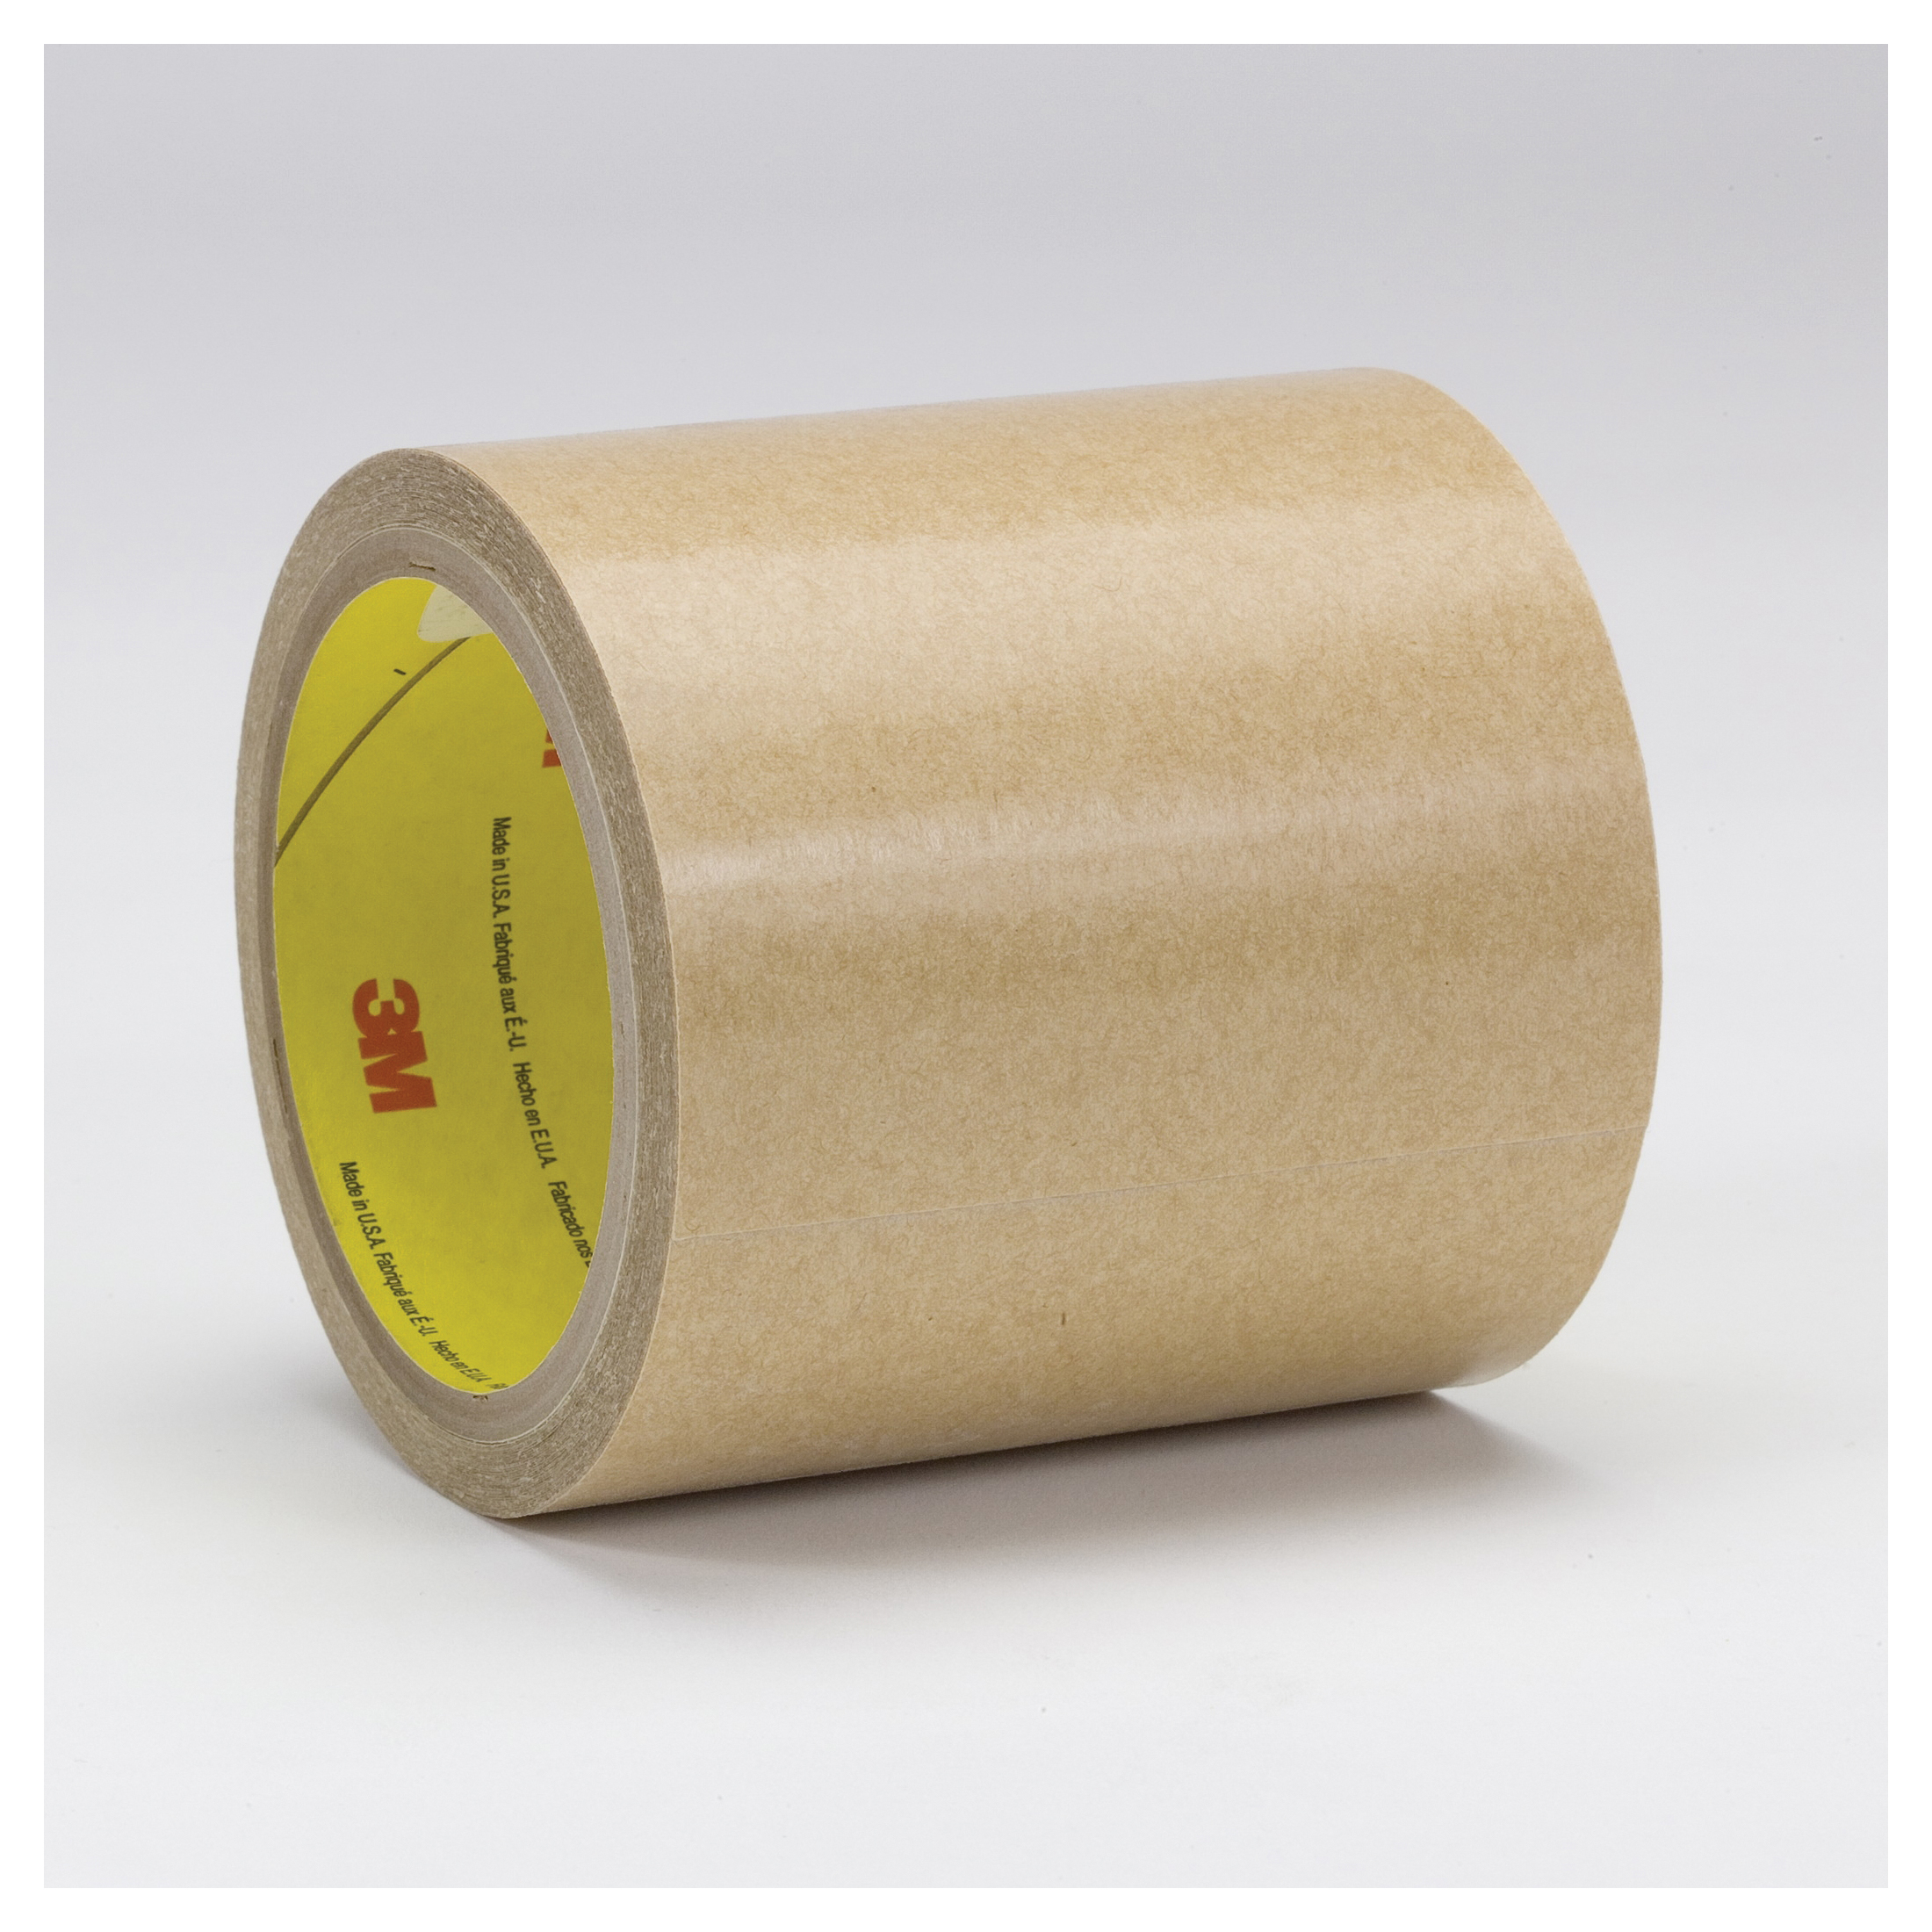 3M™ 021200-68801 General Purpose High Tack Adhesive Transfer Tape, 60 yd L x 24 in W, 8.5 mil THK, 5 mil 300 Acrylic Adhesive, Clear